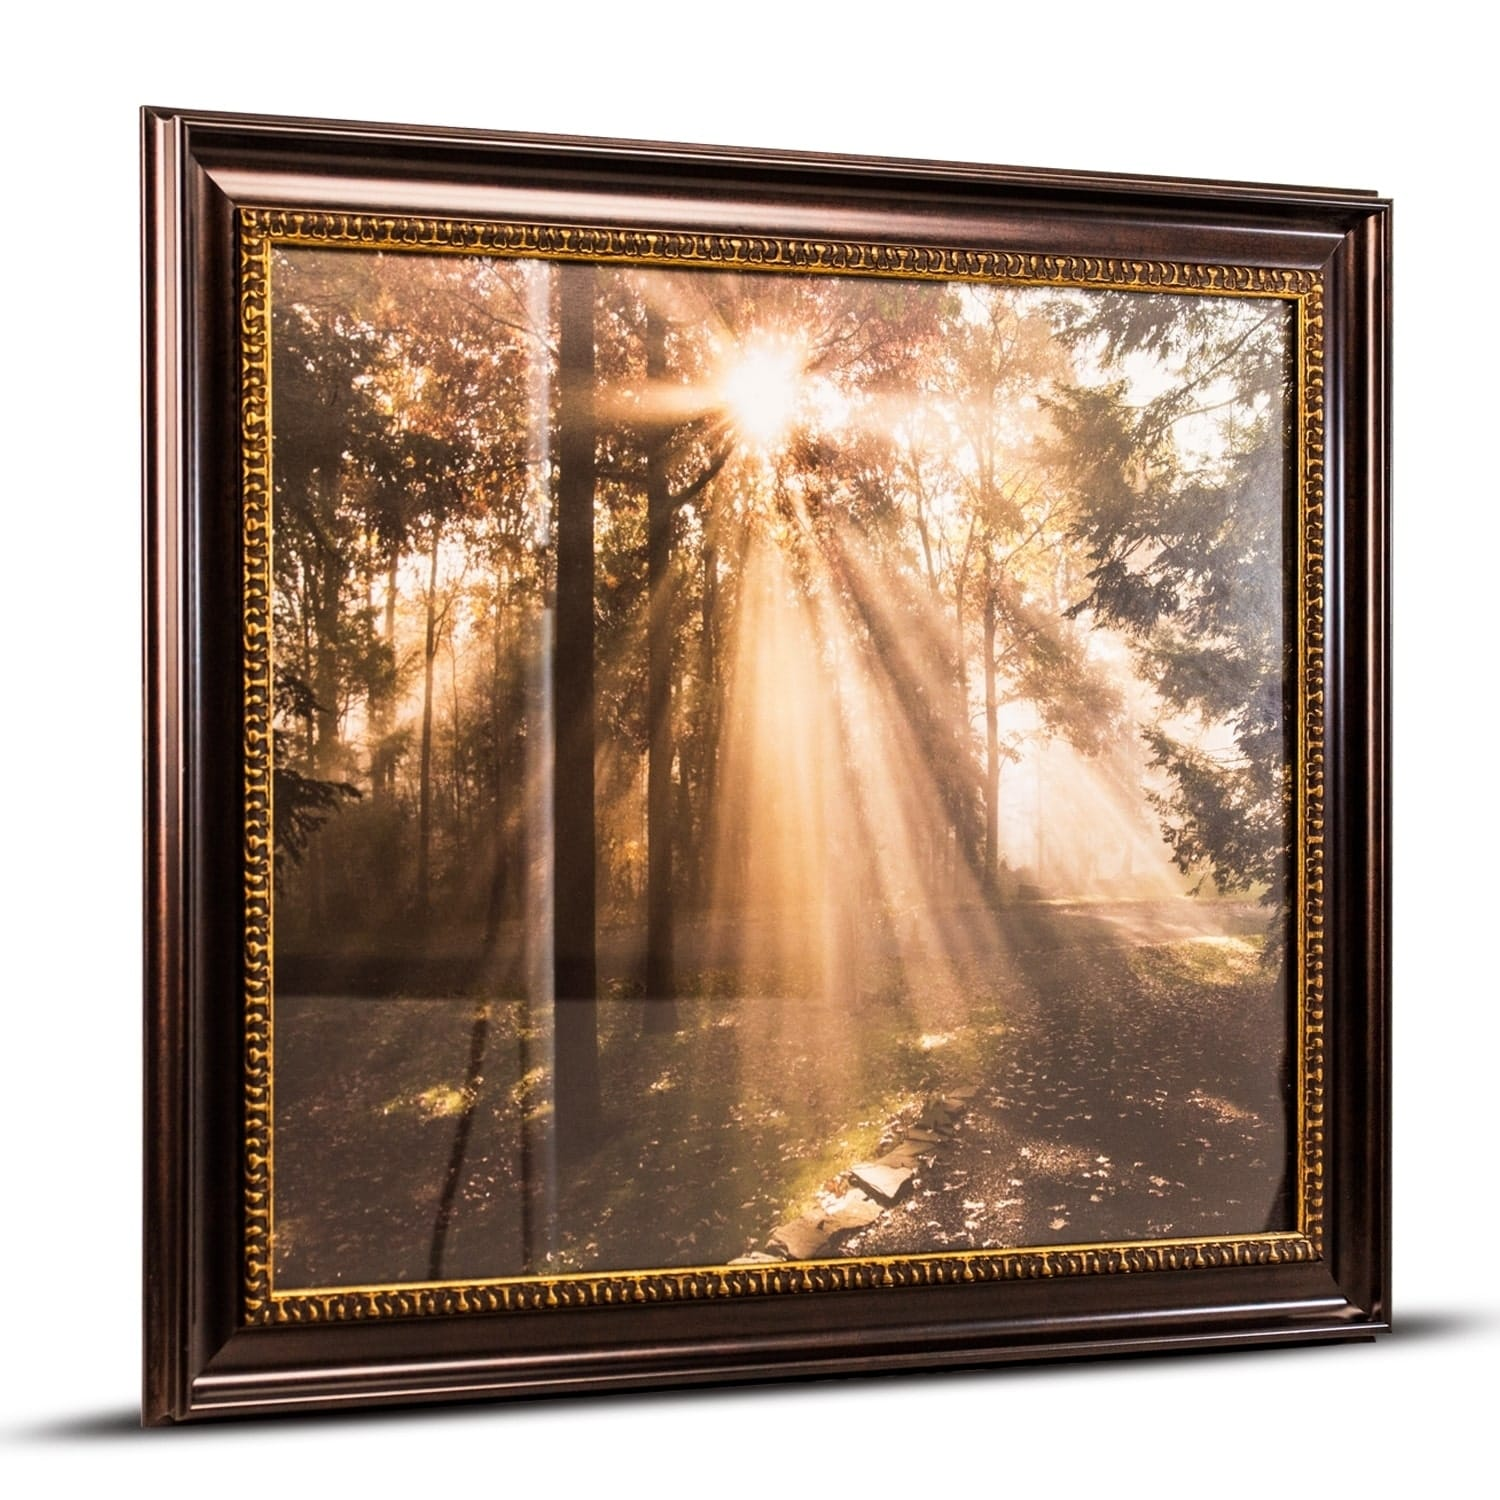 American art decor forest sunrise framed canvas photo print wall art